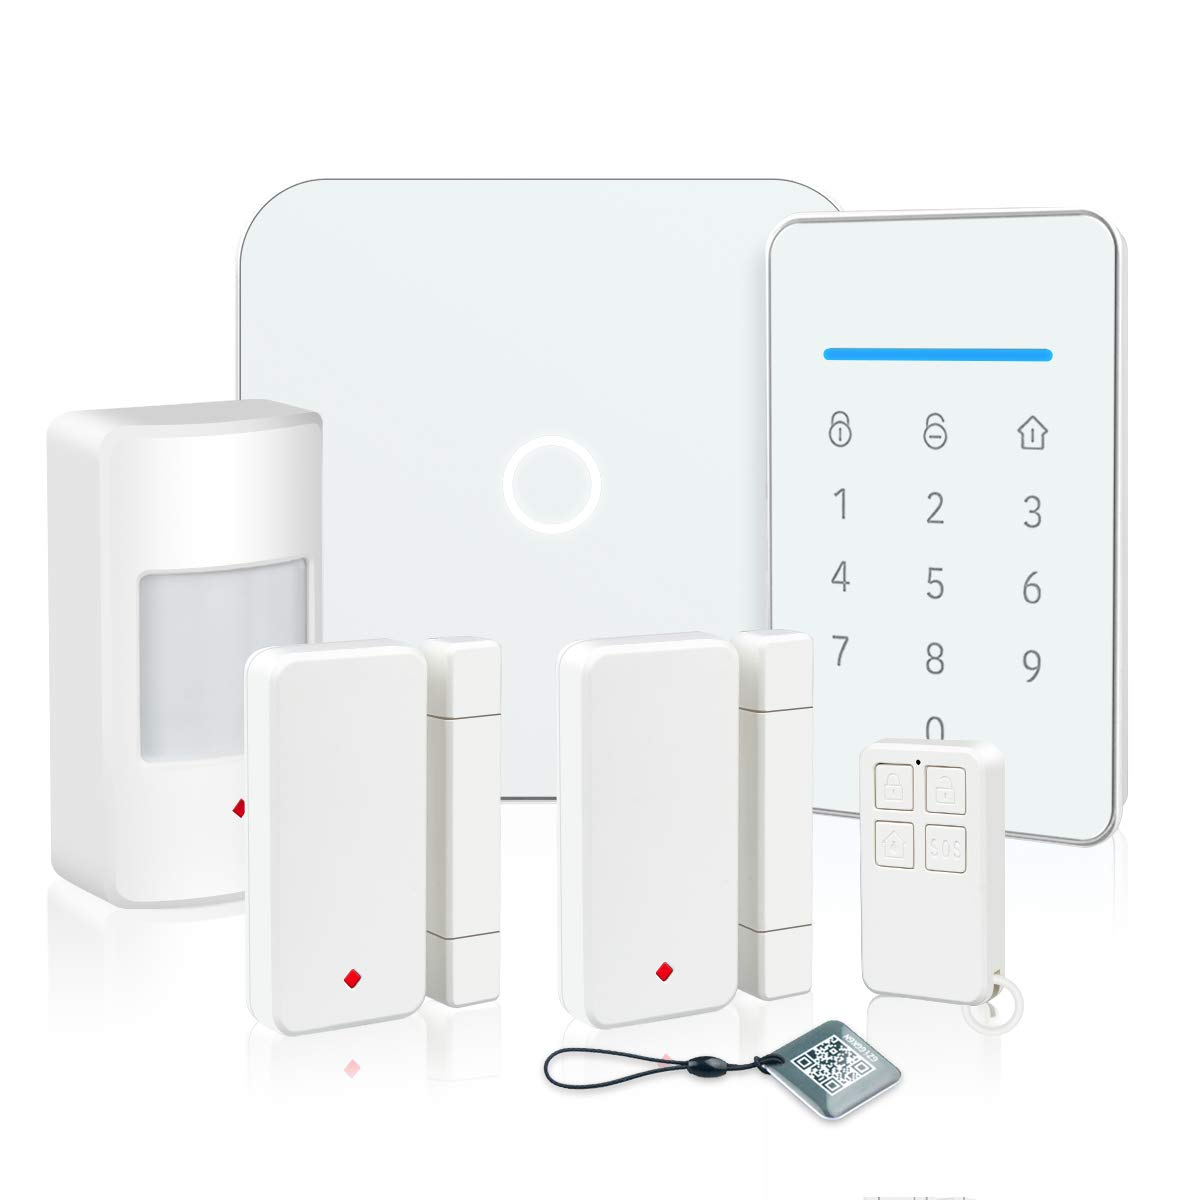 LarmTek Smart Wi-Fi Alarm System with, Alarm Host, Motion Sensor and Remote Smart Phone Control, IP Camera(Optional,Wireless LAN Wi-Fi GSM Cellular Home Security System Kit with Easy DIY Setup, AK1-W by LarmTek